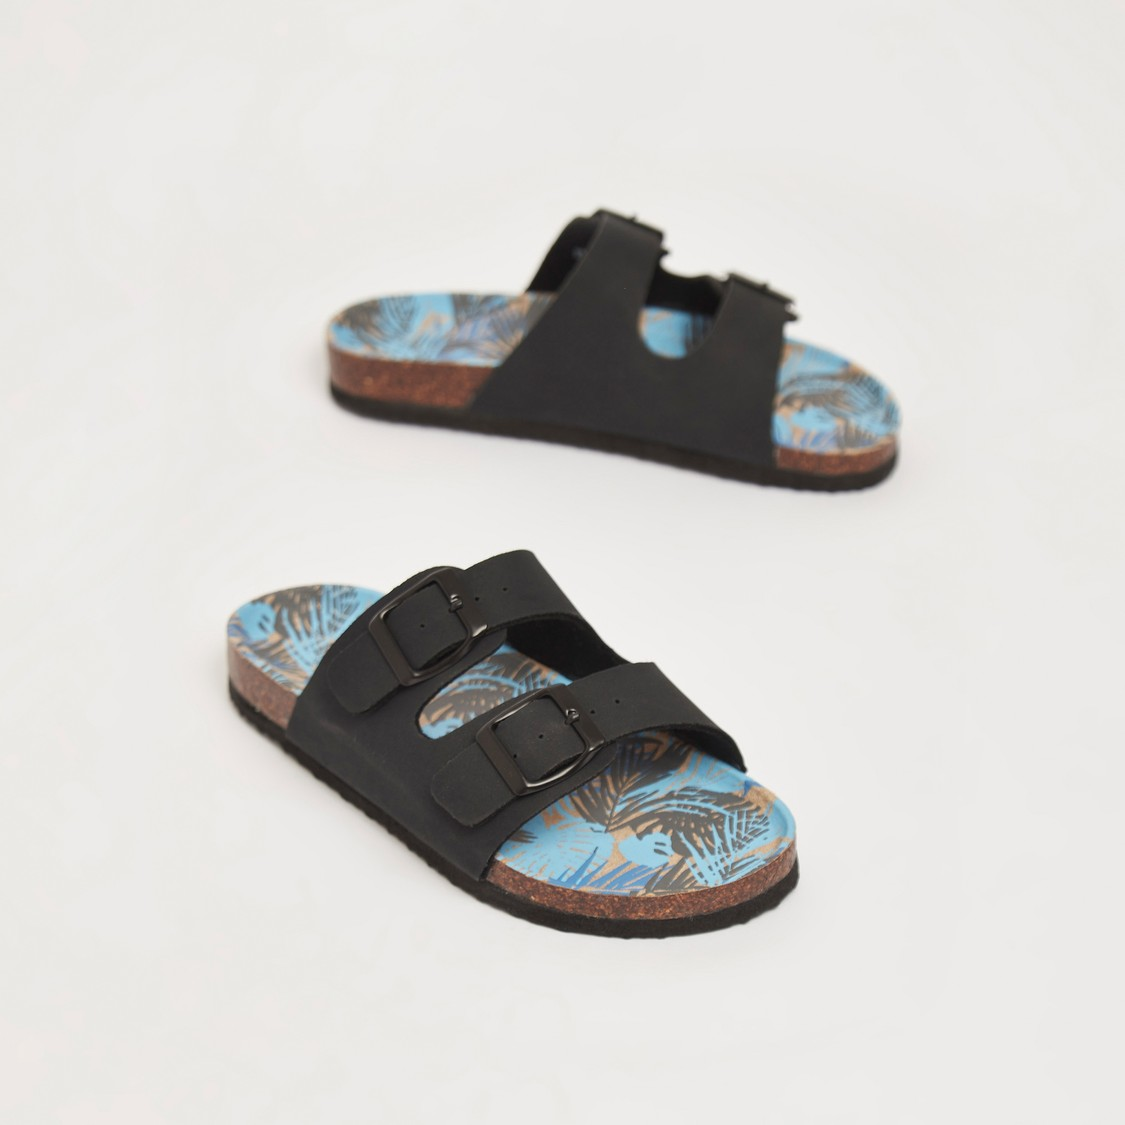 Printed Sandals with Textured Straps